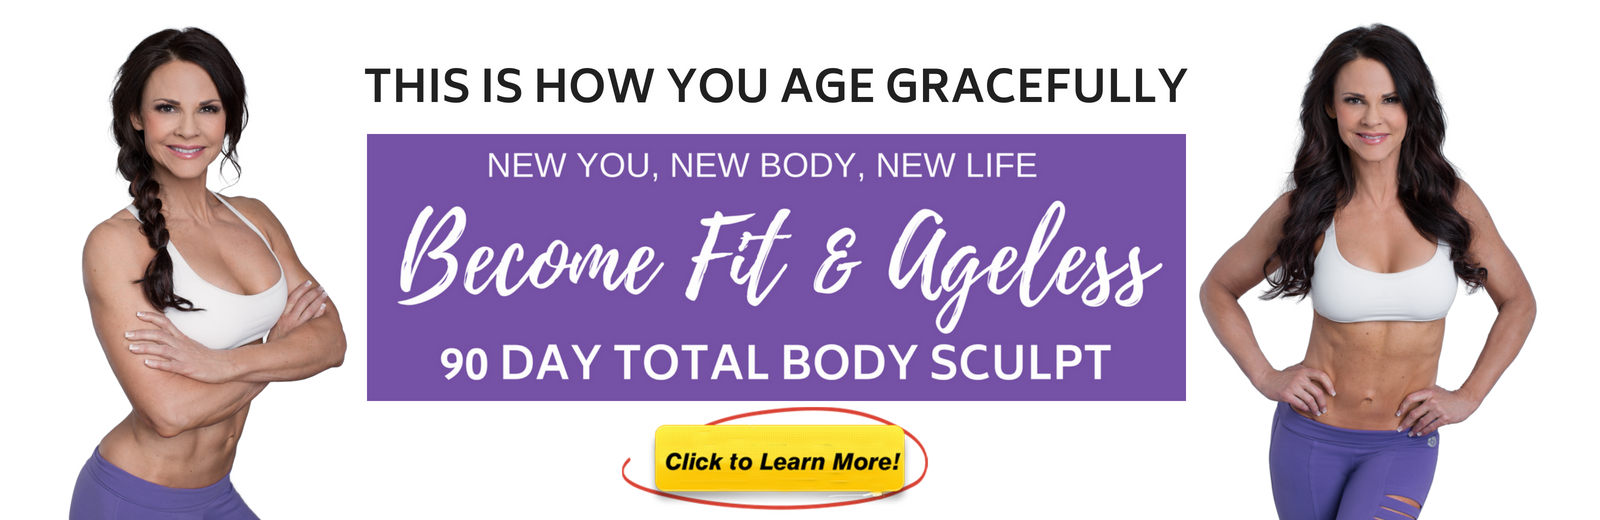 Fit & Ageless Banner-Learn More.png